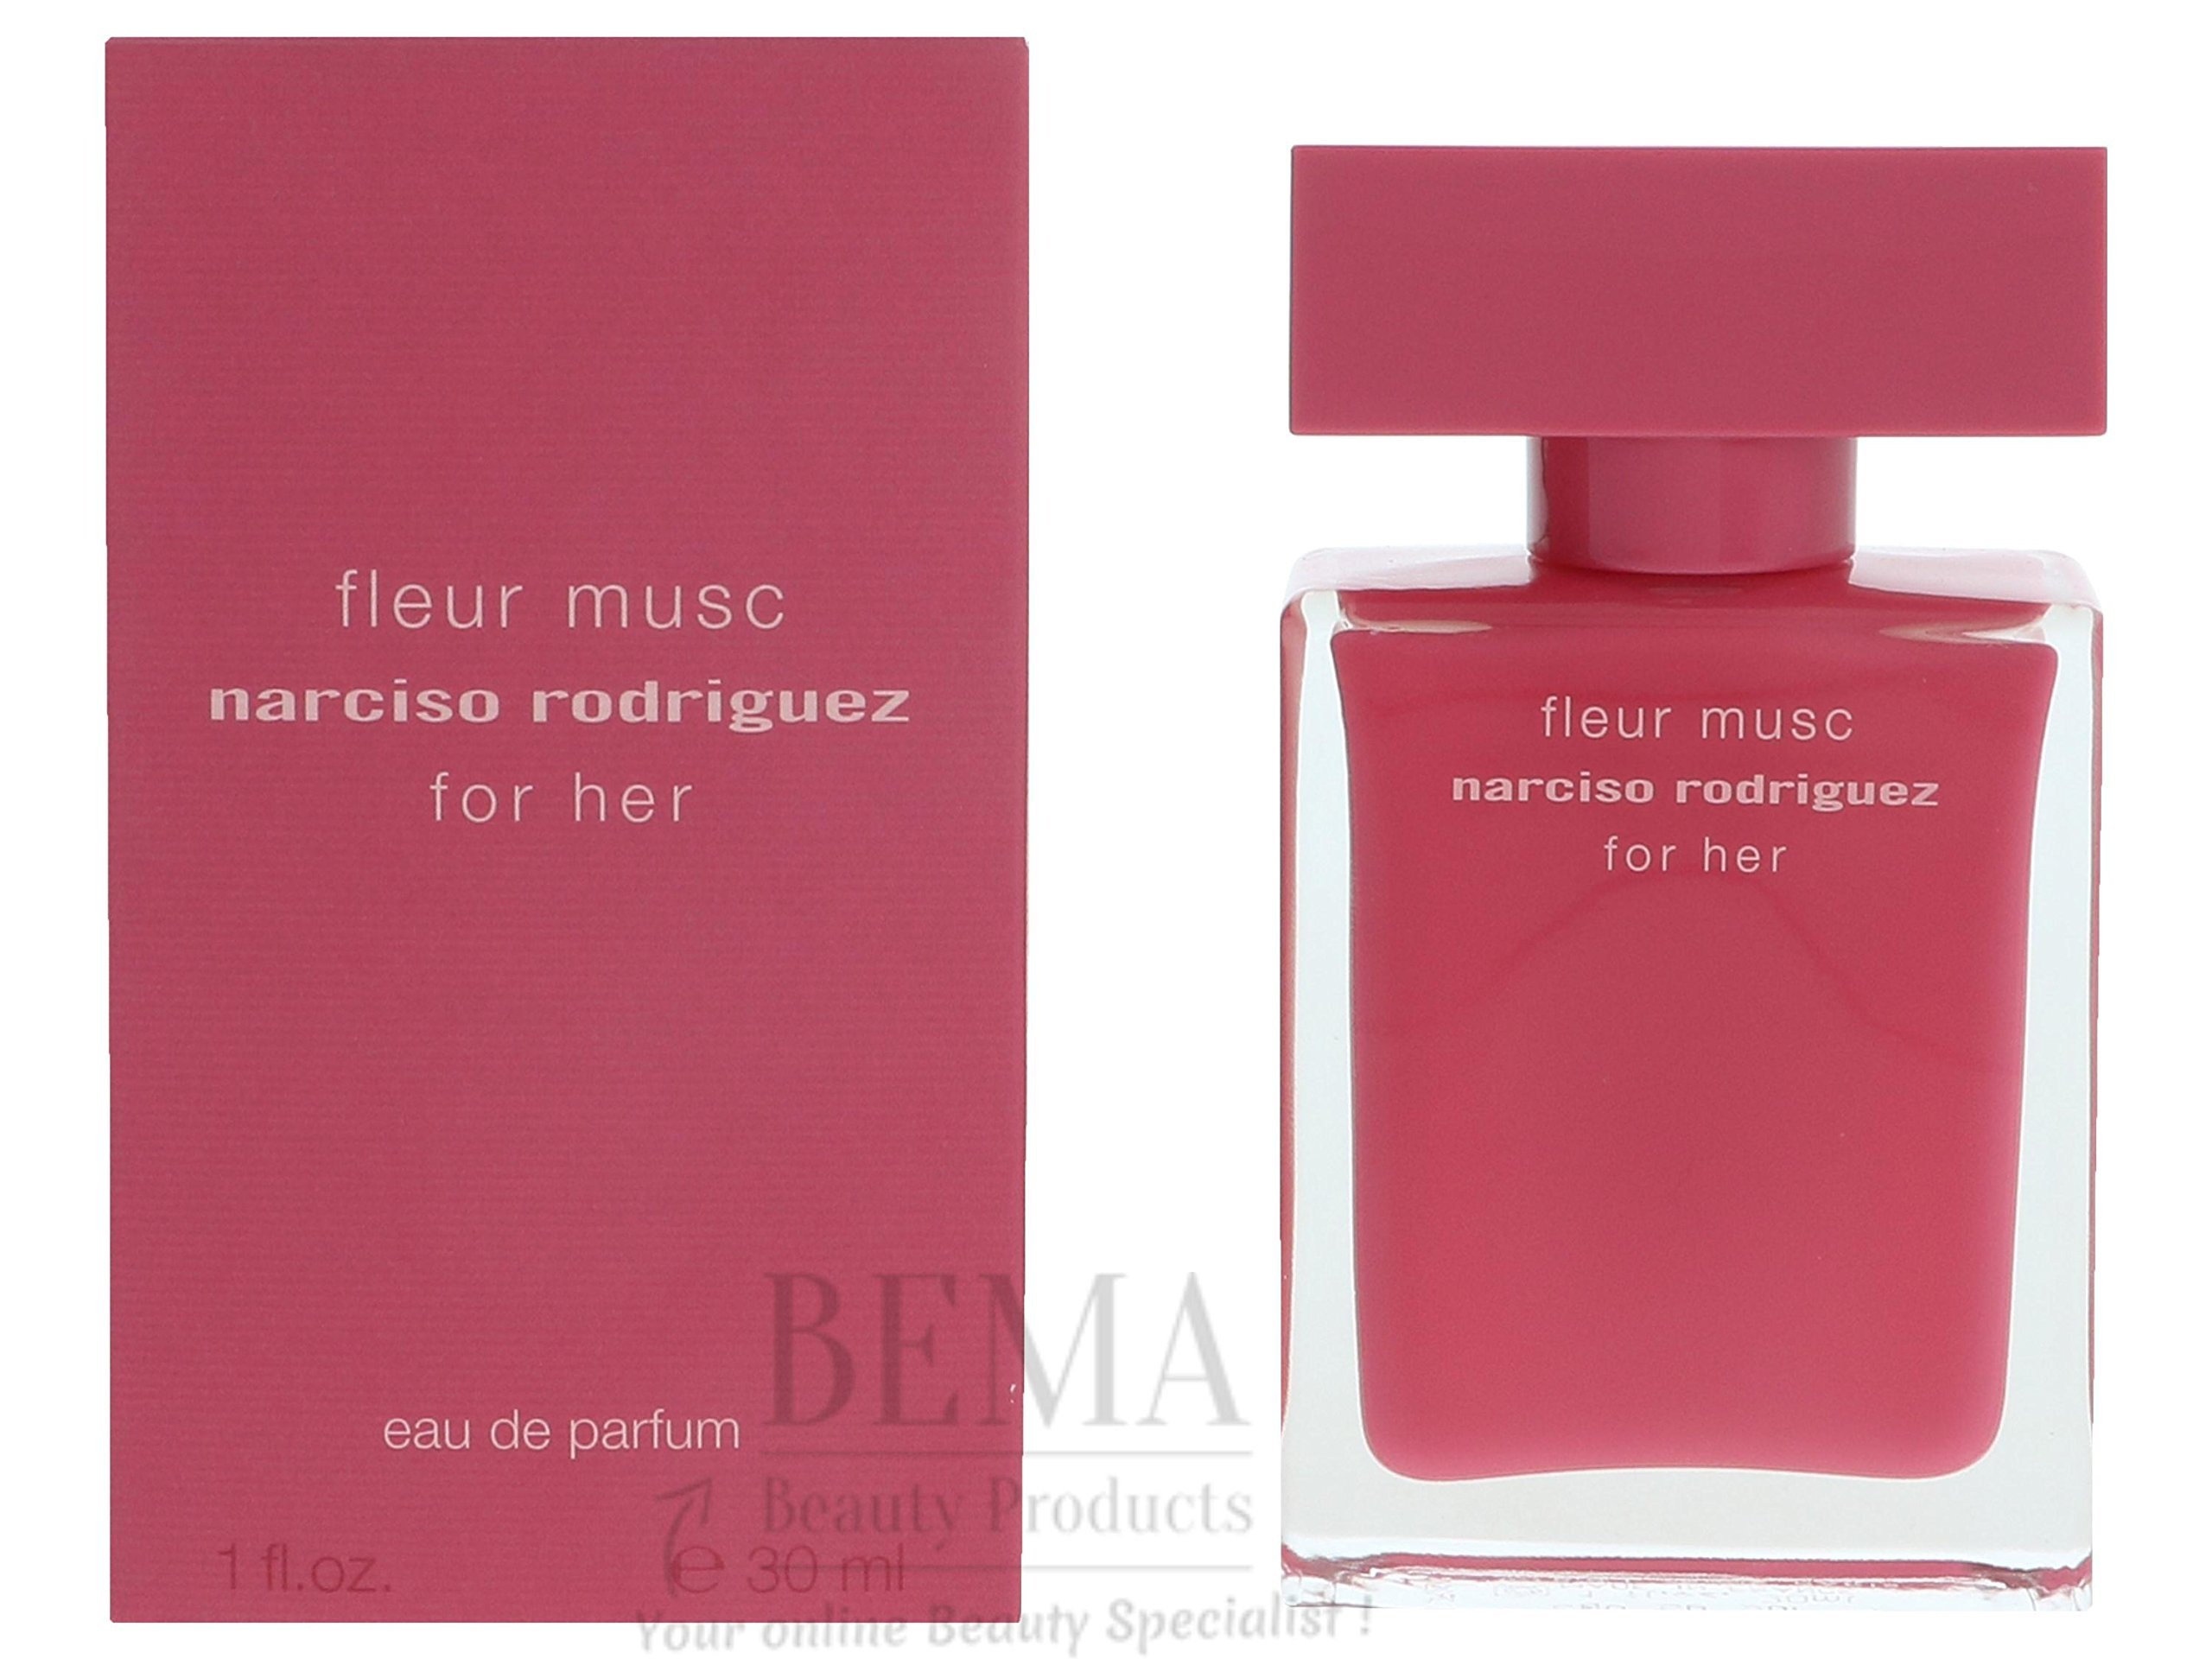 Amazon.com: Narciso Rodriguez - Womens Perfume Narciso Rodriguez For Her Fleur Musc Narciso Rodriguez EDP: Beauty